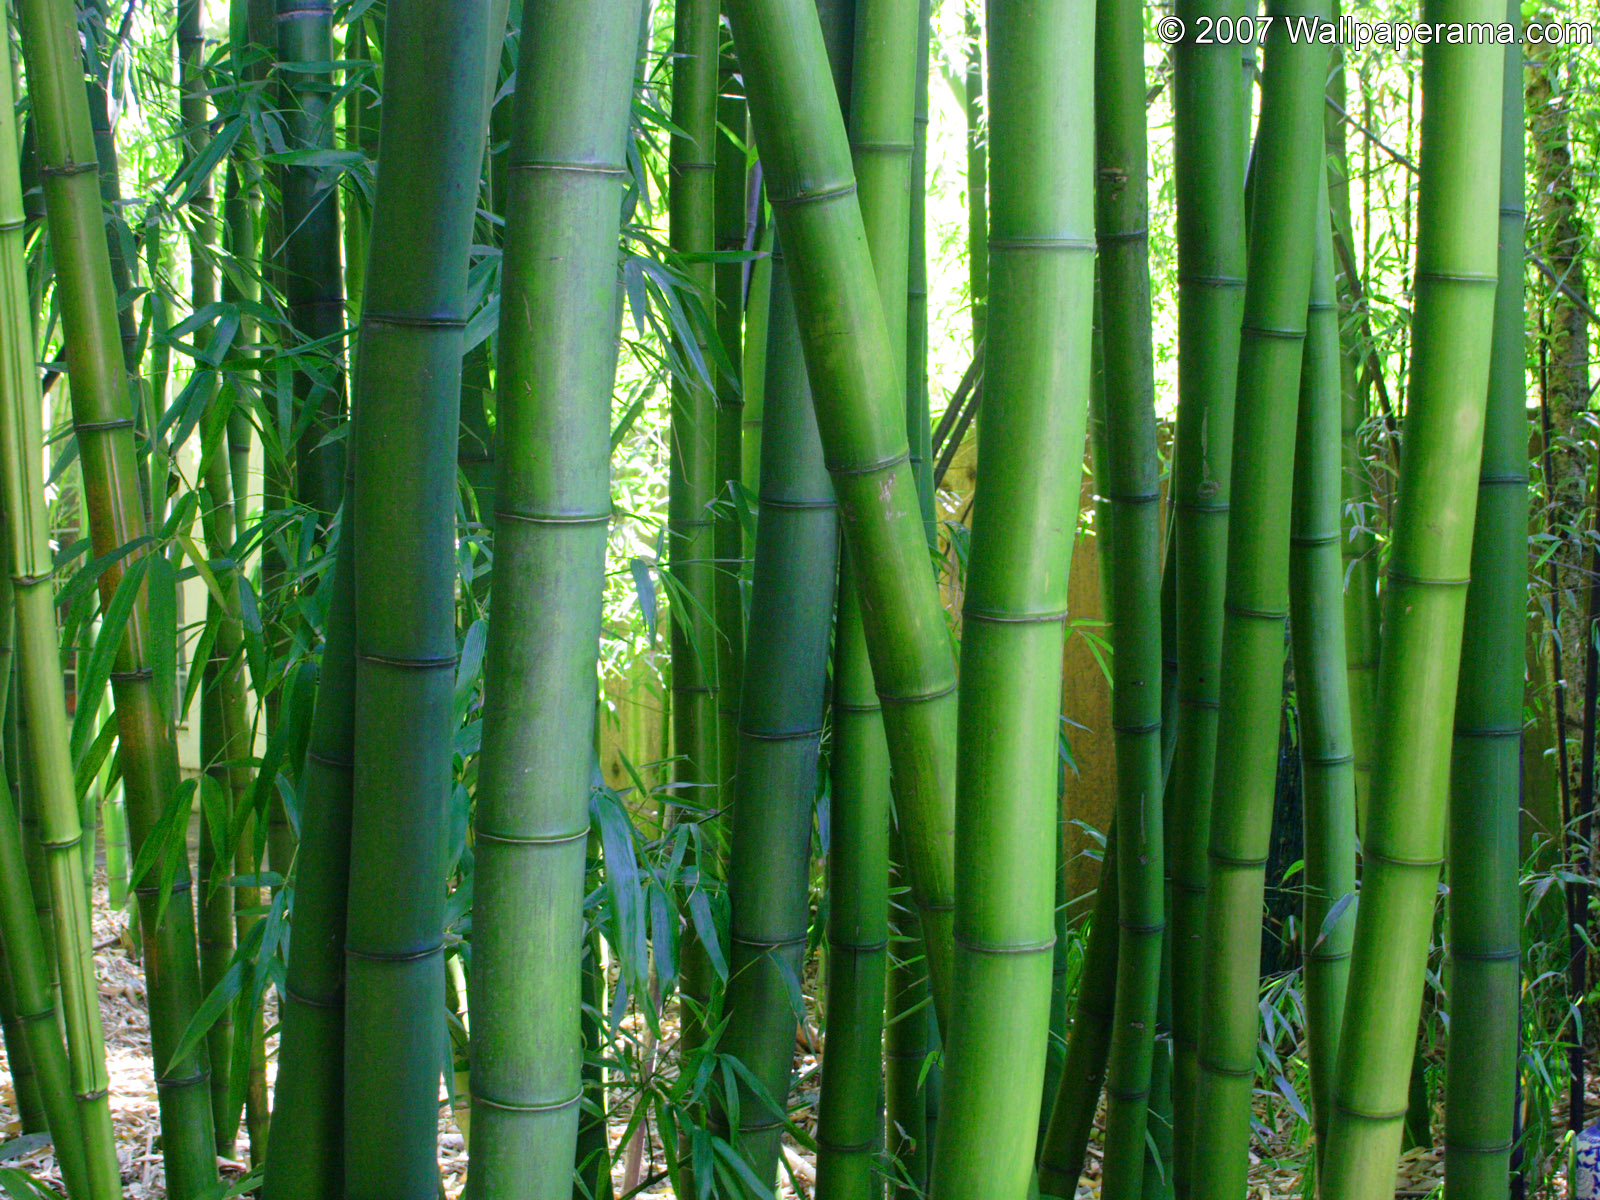 Bamboo Wallpaper Free Hd Backgrounds Images Pictures